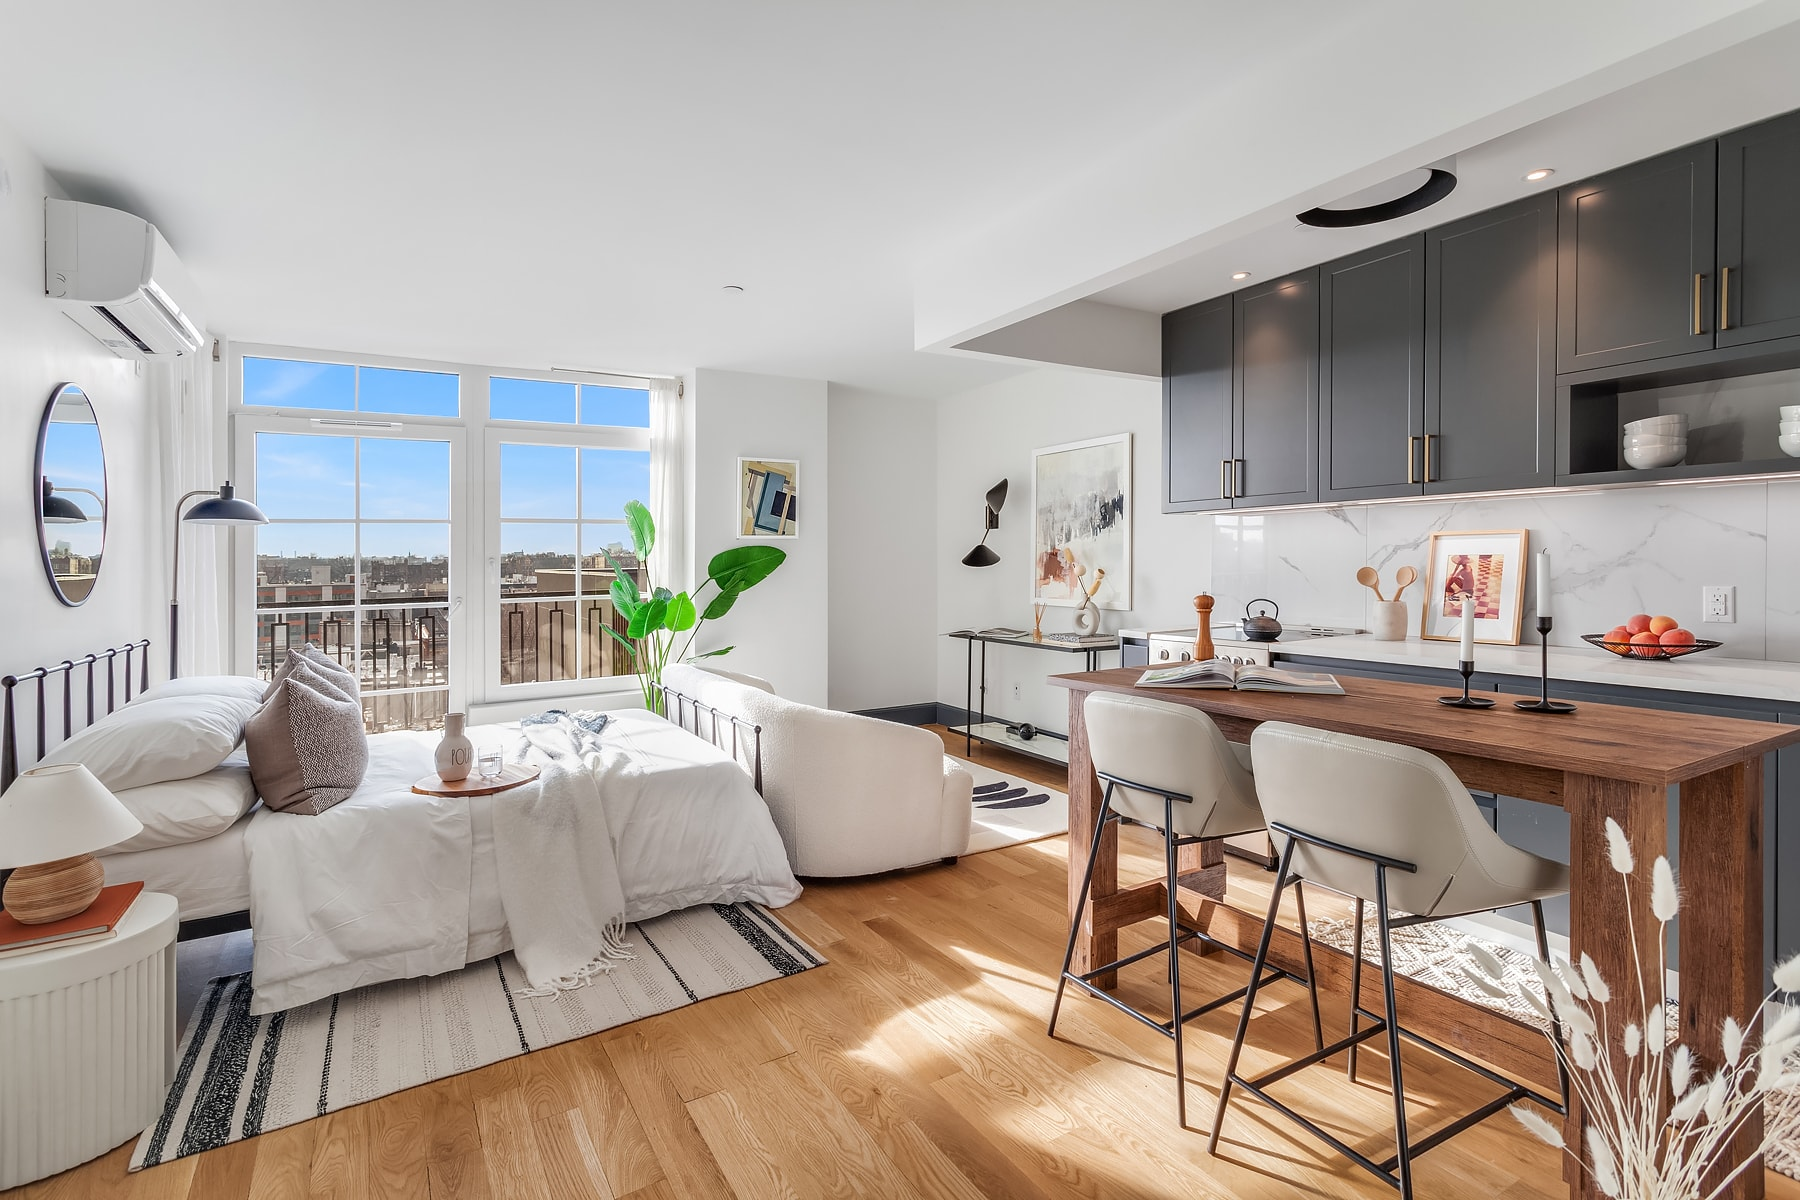 Large Brooklyn Studio Apartment For Rent in Bed-Stuy Neighborhood With French Windows and City Views